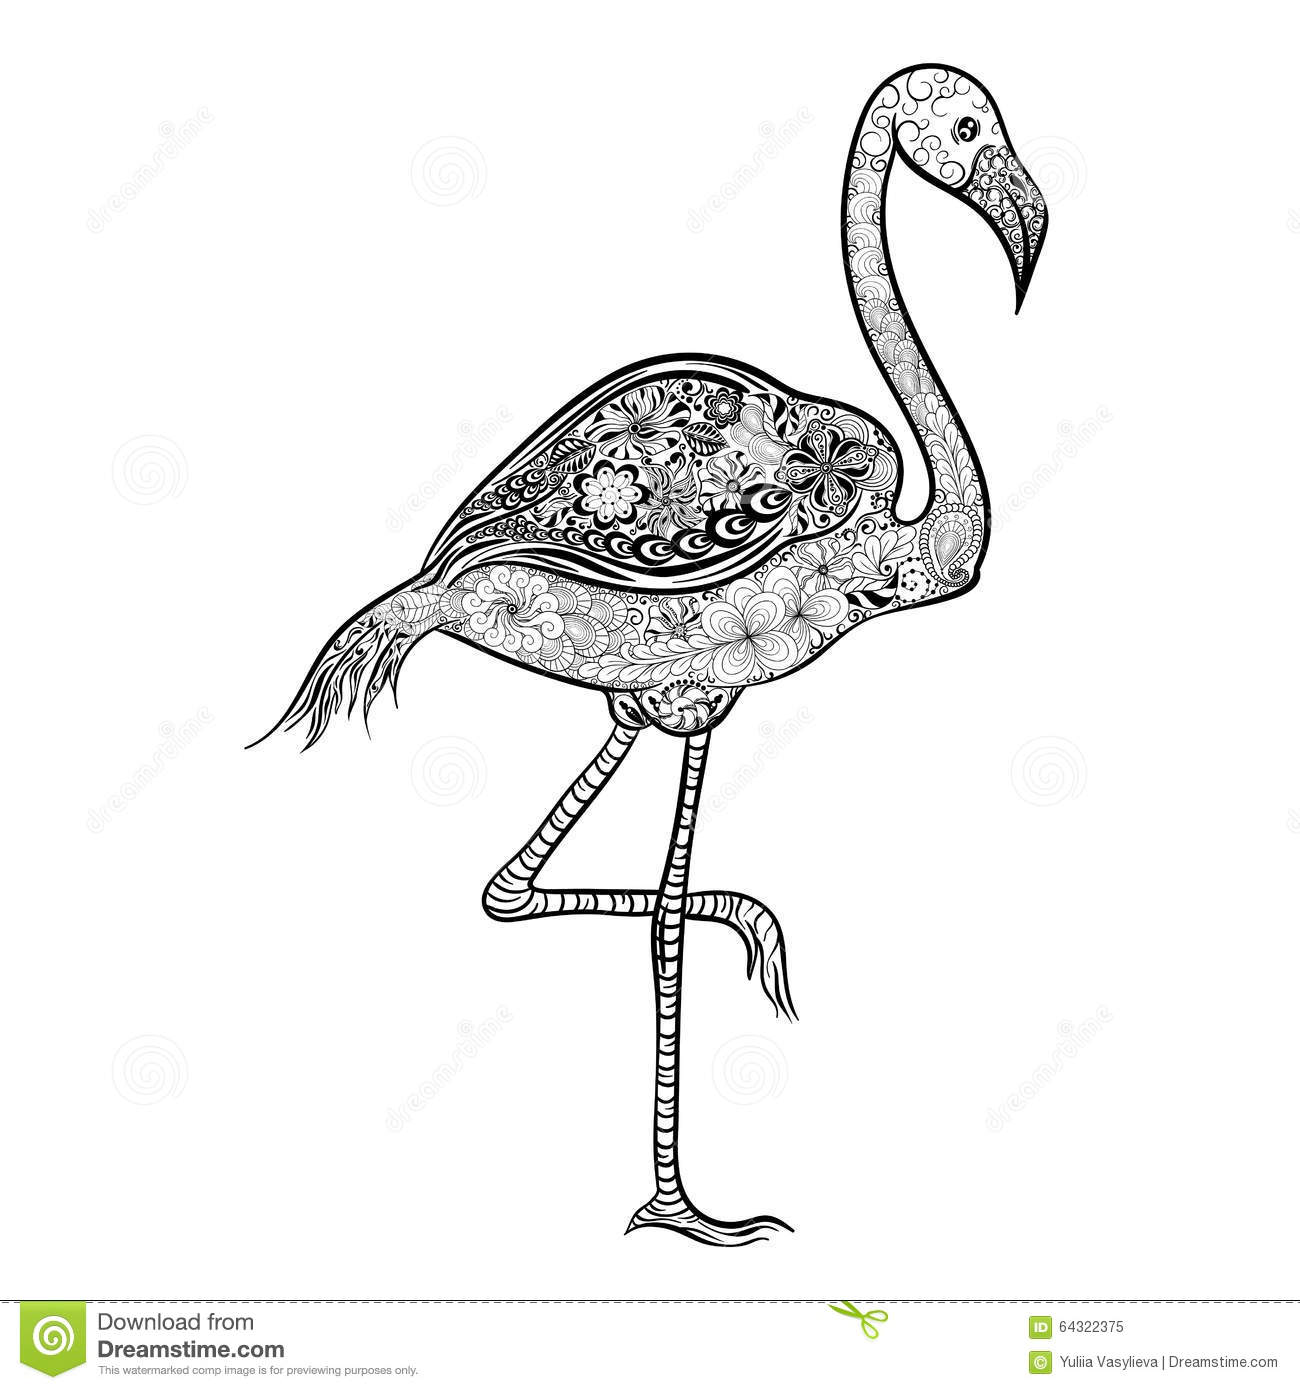 Illustration Flamingo Was Created In Doodling Style Black And White